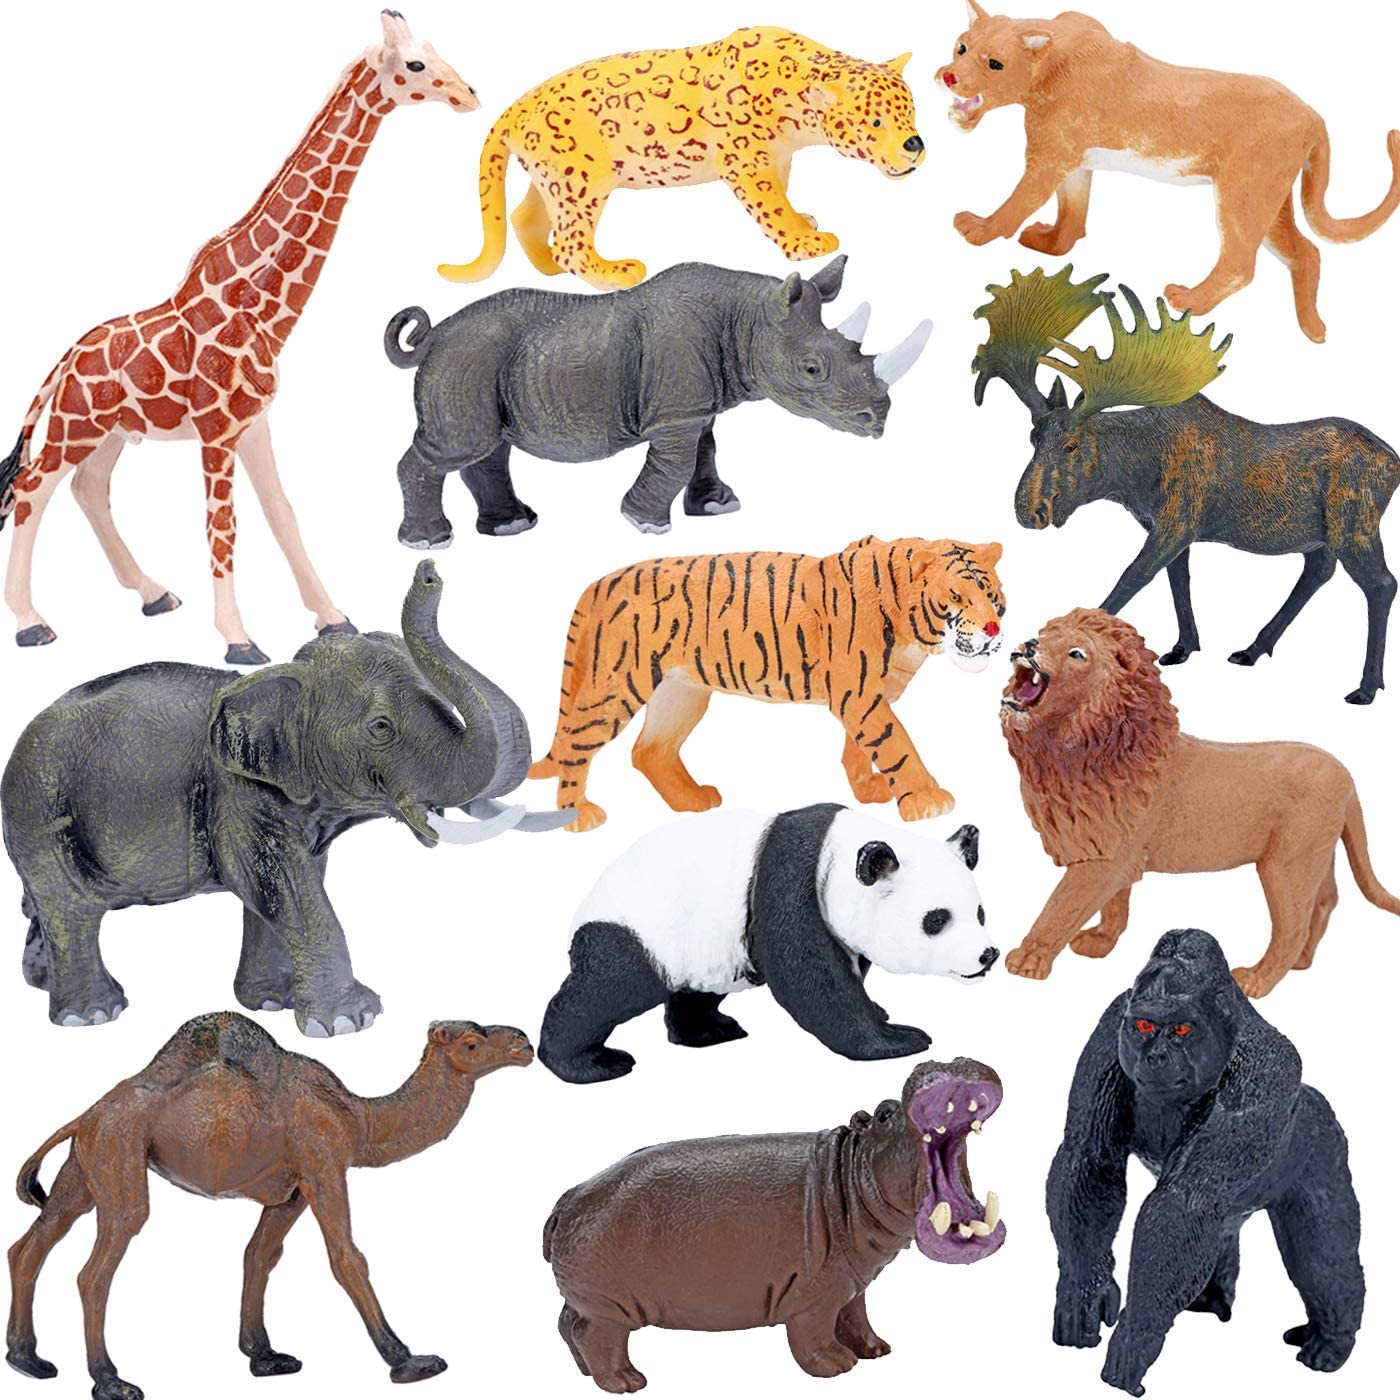 Amazon Com Safari Animals Figures Toys Realistic Jumbo Wild Zoo Animals Figurines Large Plastic African Jungle Animals Playset With Elephant Giraffe Lion Tiger Gorilla For Kids Toddlers 12 Piece Gift Set Toys